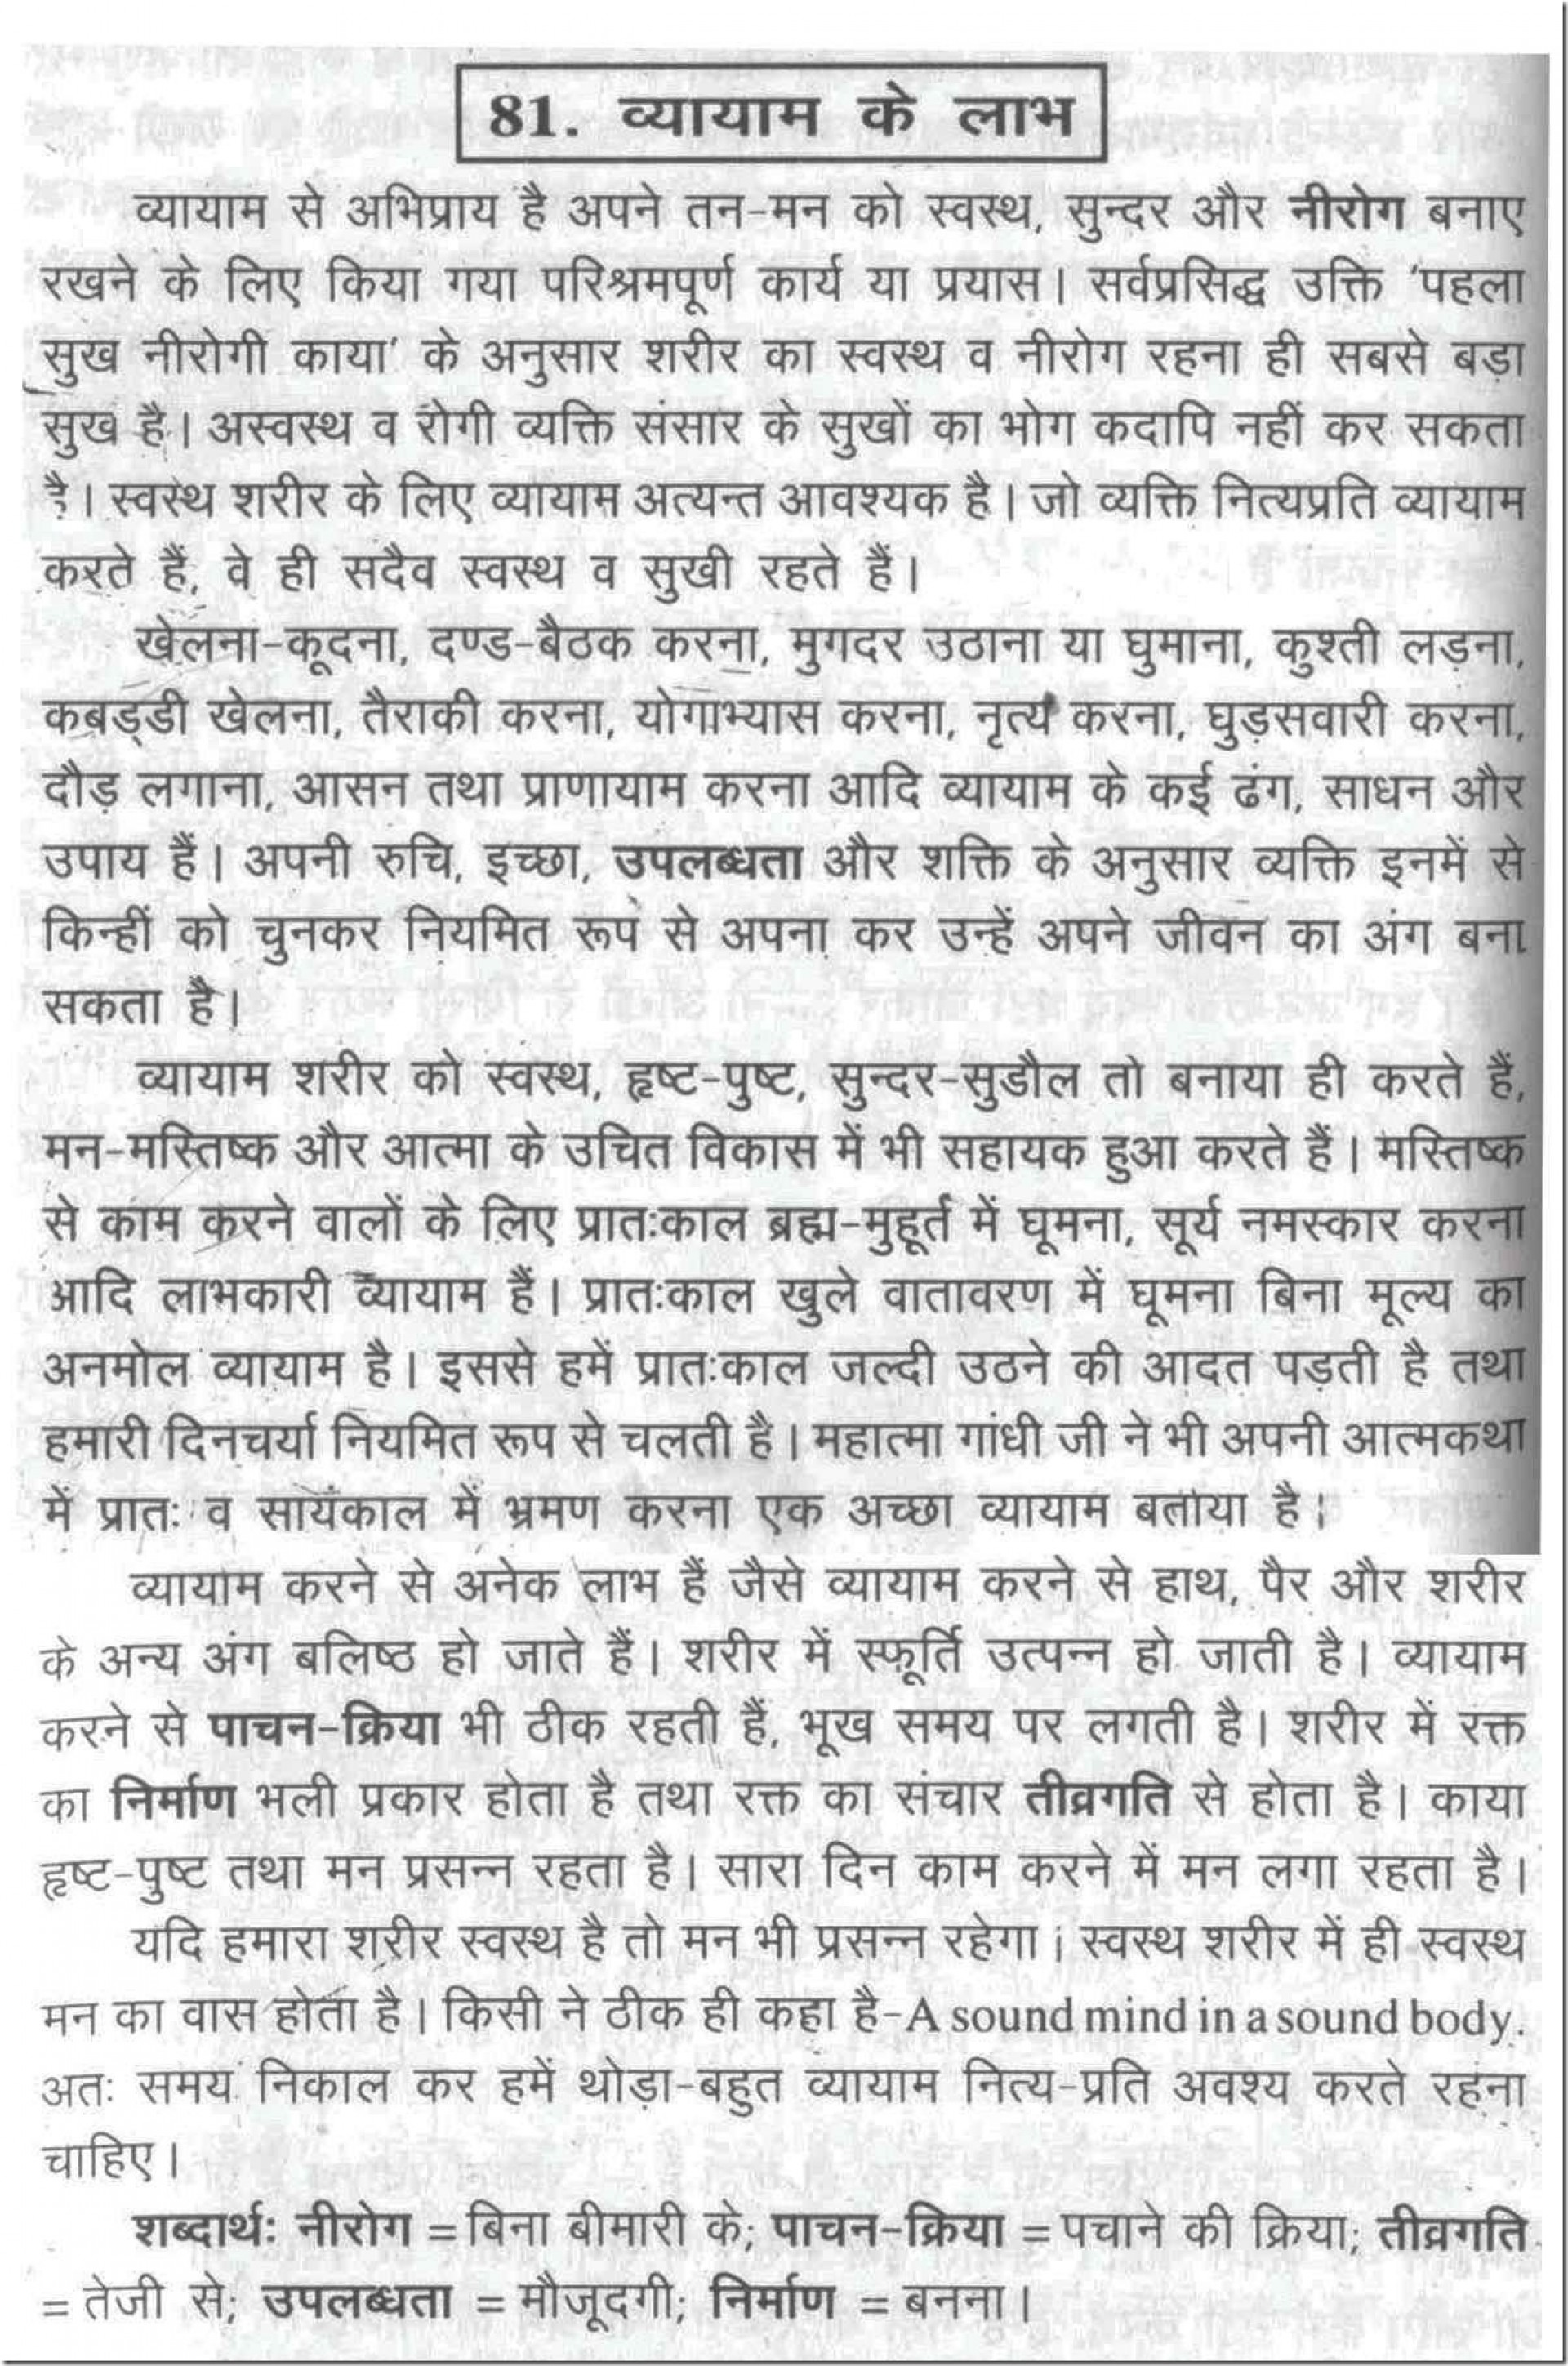 008 Essay Example Importance Of Exercise 2563478896 On Health And Fitness Through Fascinating In Hindi Language Sports 1920